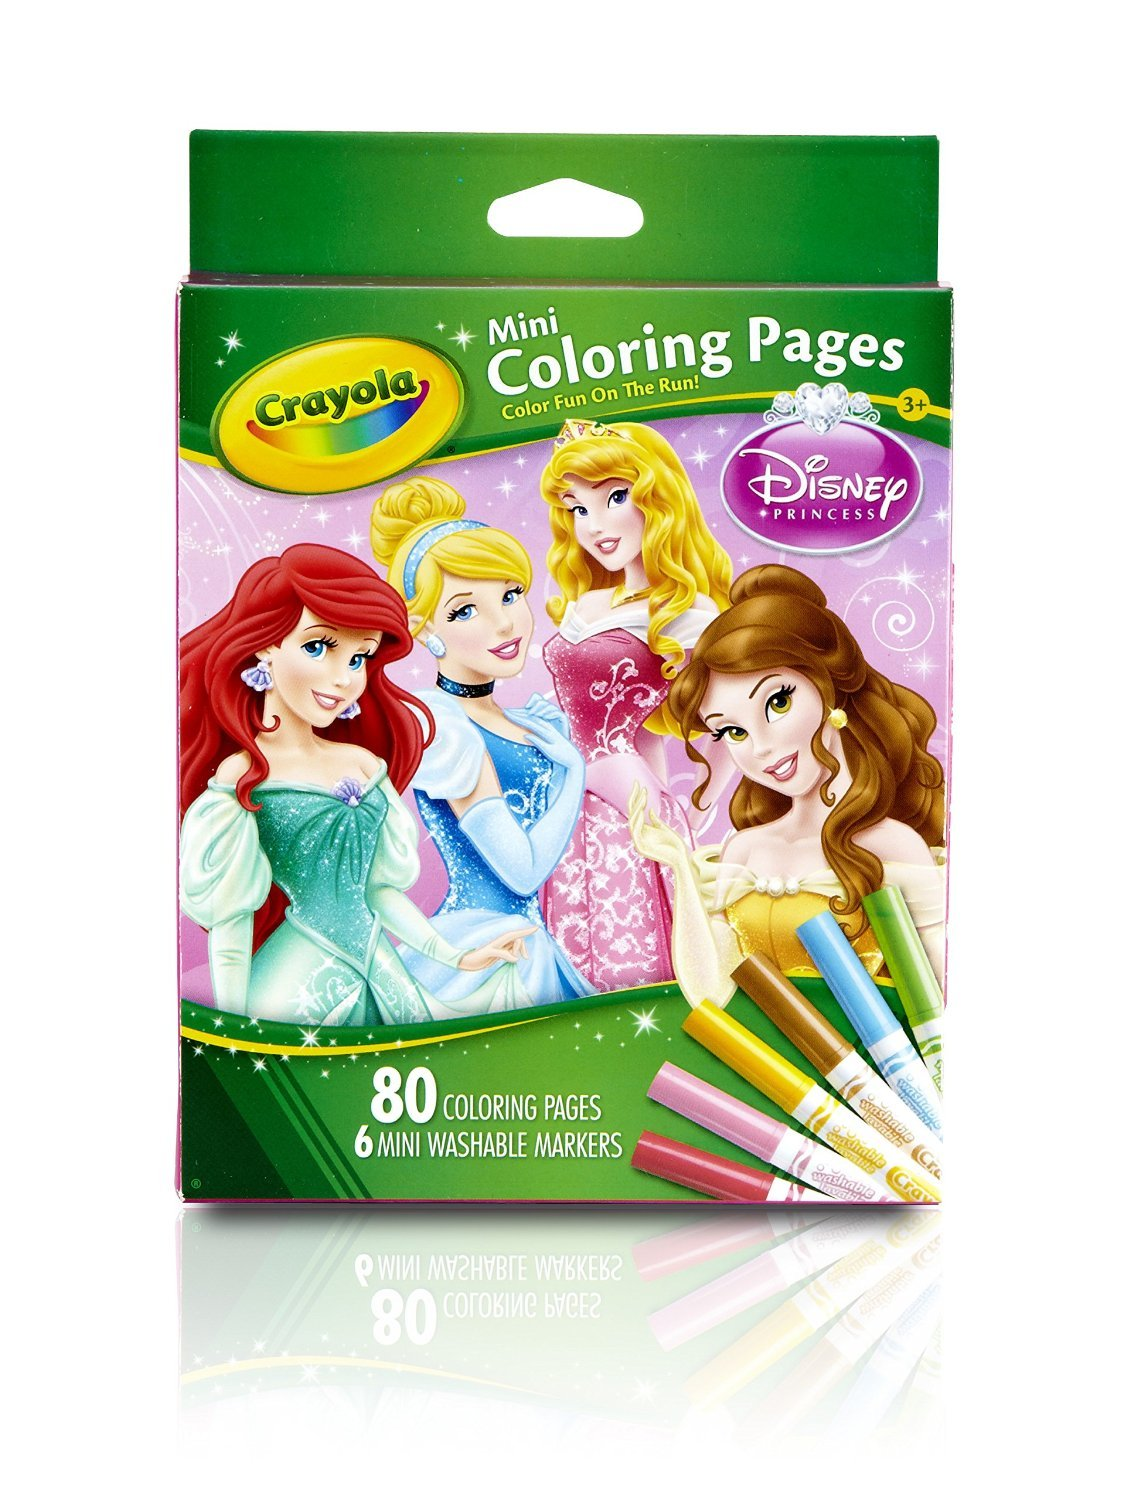 Amazoncom Crayola Crayola Mini Coloring Pages Disney Princess